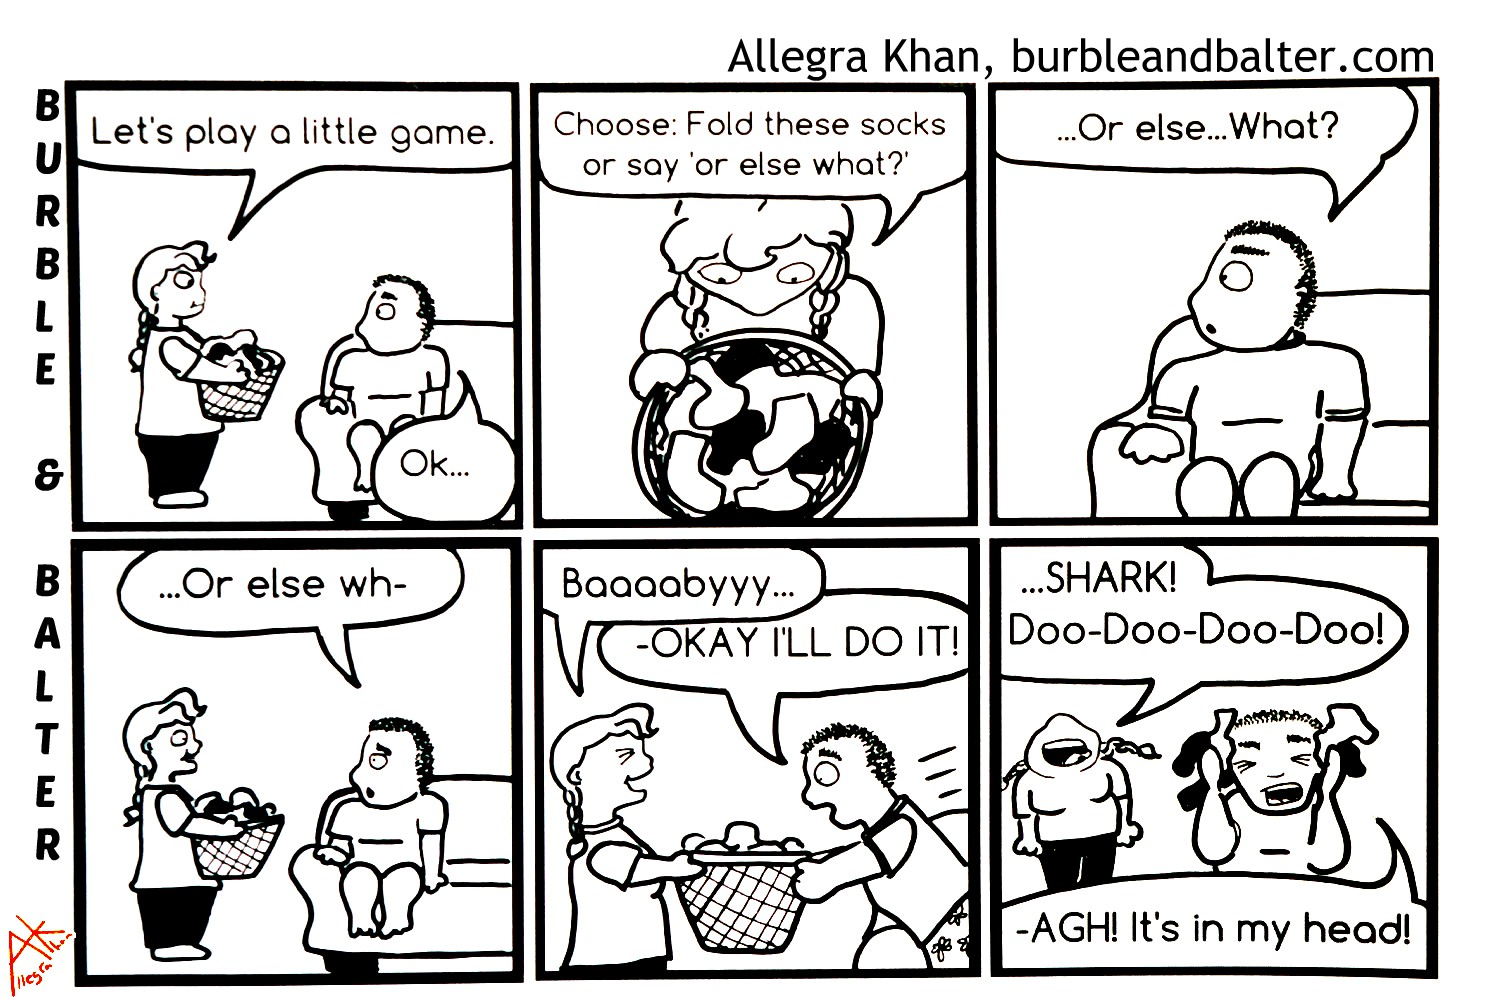 Baby-Shark-Comic-Allegra-Khan-Burble-and-Balter.jpg